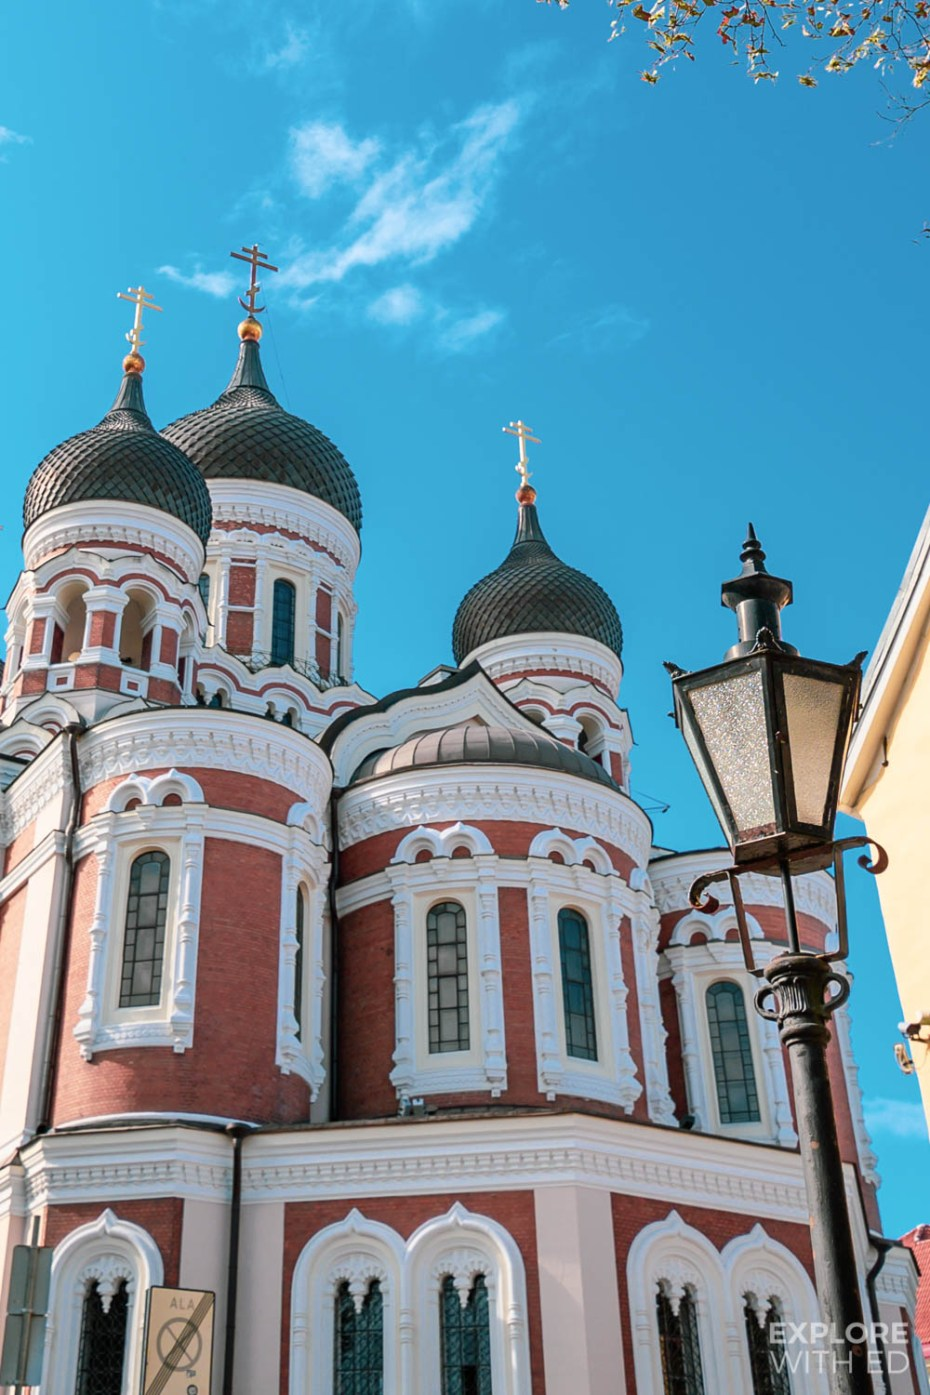 The round towers of Alexander Nevsky Cathedral is a beautiful piece of architecture in Tallinn